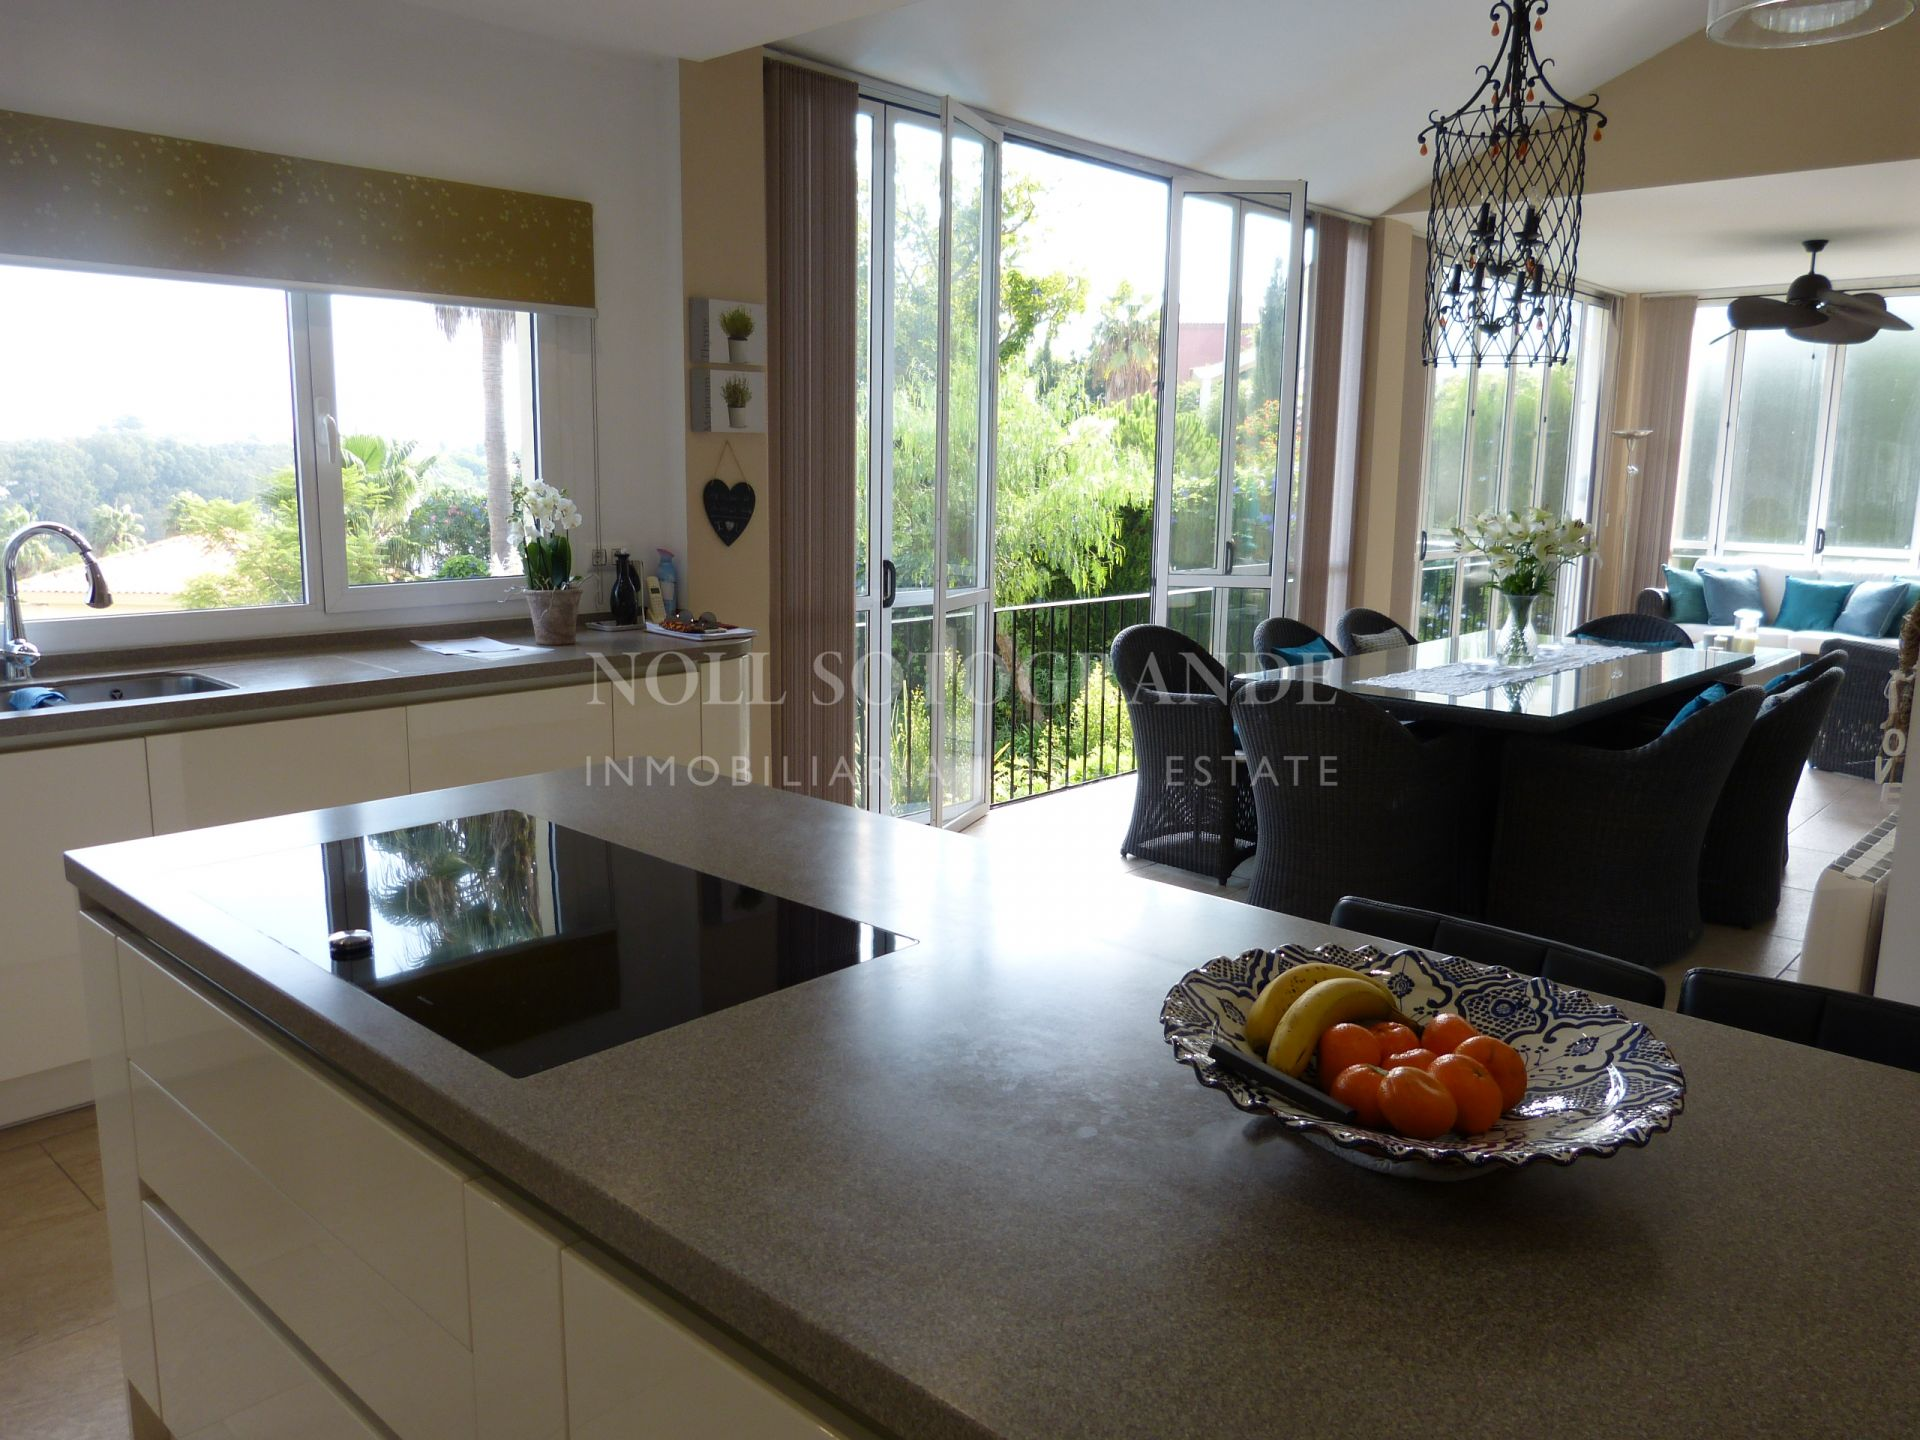 Villa located in Sotogrande Alto, only few minutes drive from the International School.